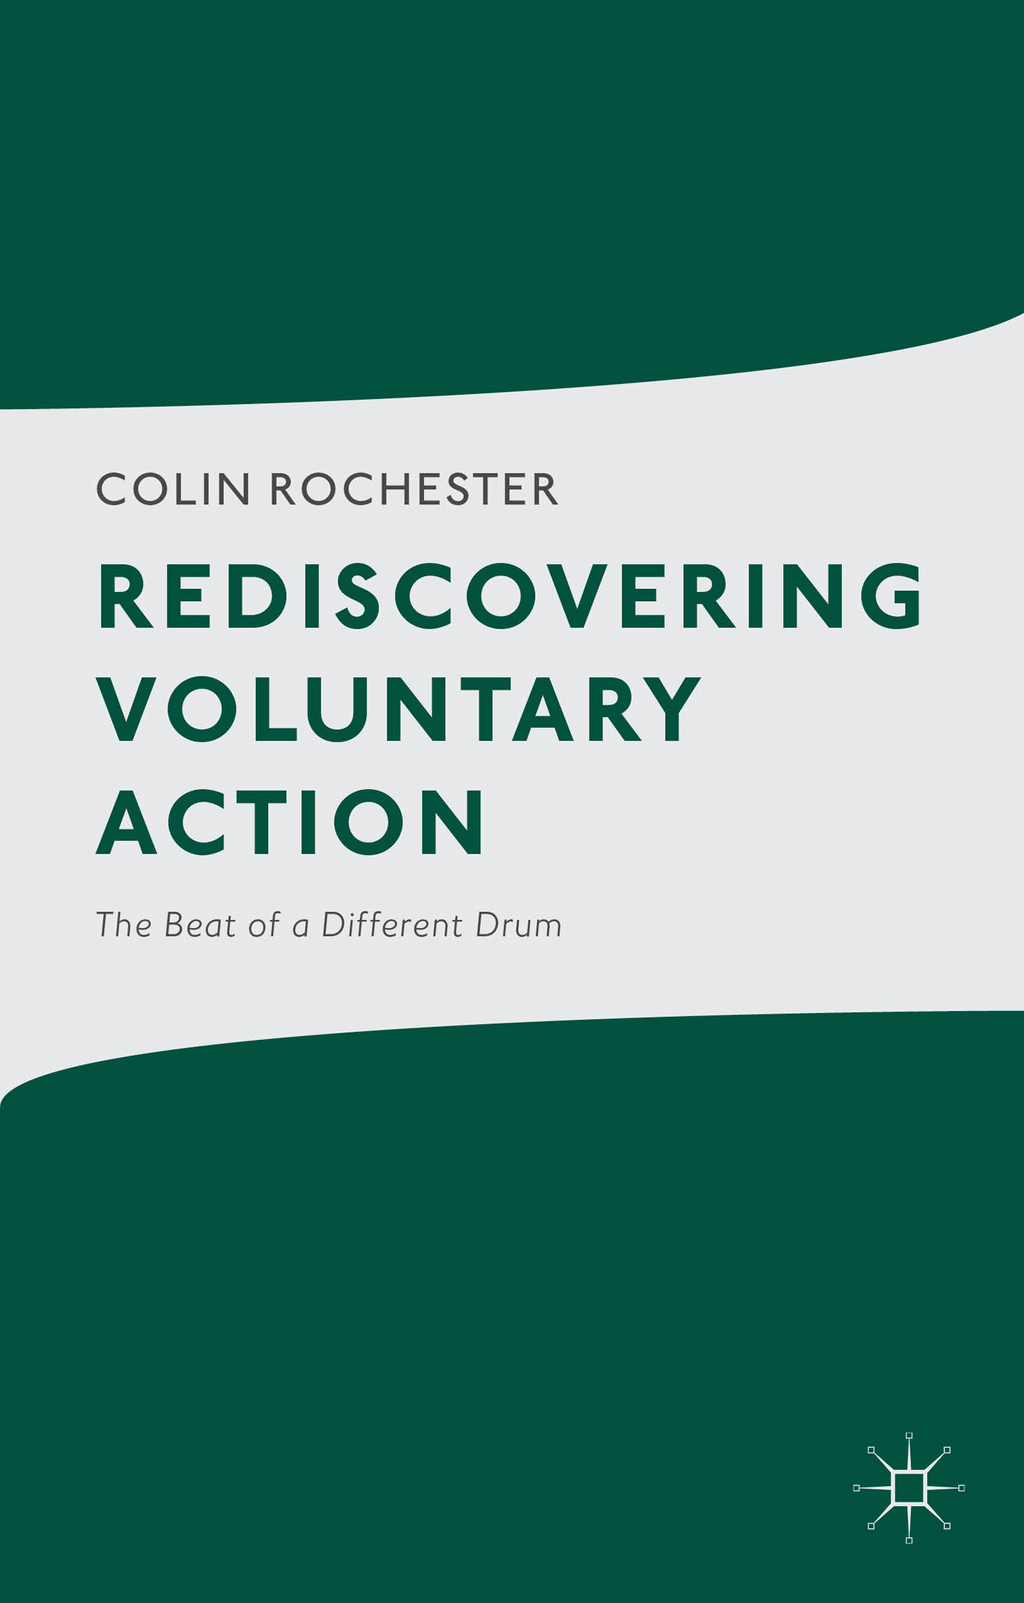 Rediscovering Voluntary Action The Beat of a Different Drum